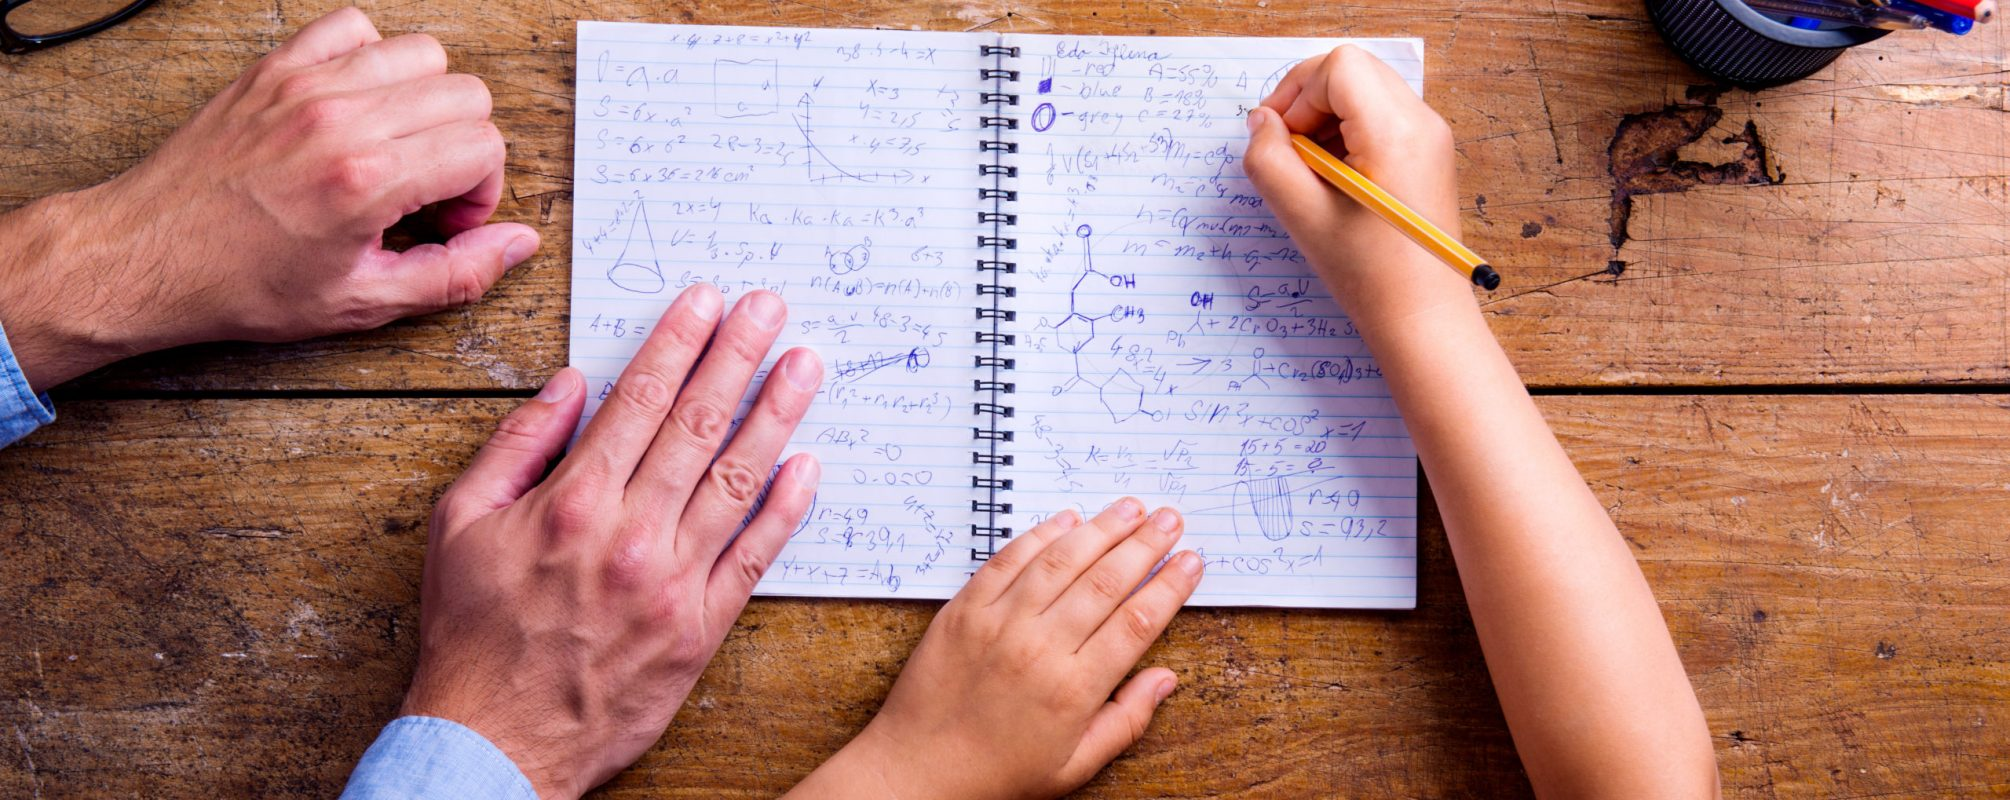 Unrecognizable father and son studying together, writing into a notebook. Studio shot on wooden background. Flat lay.